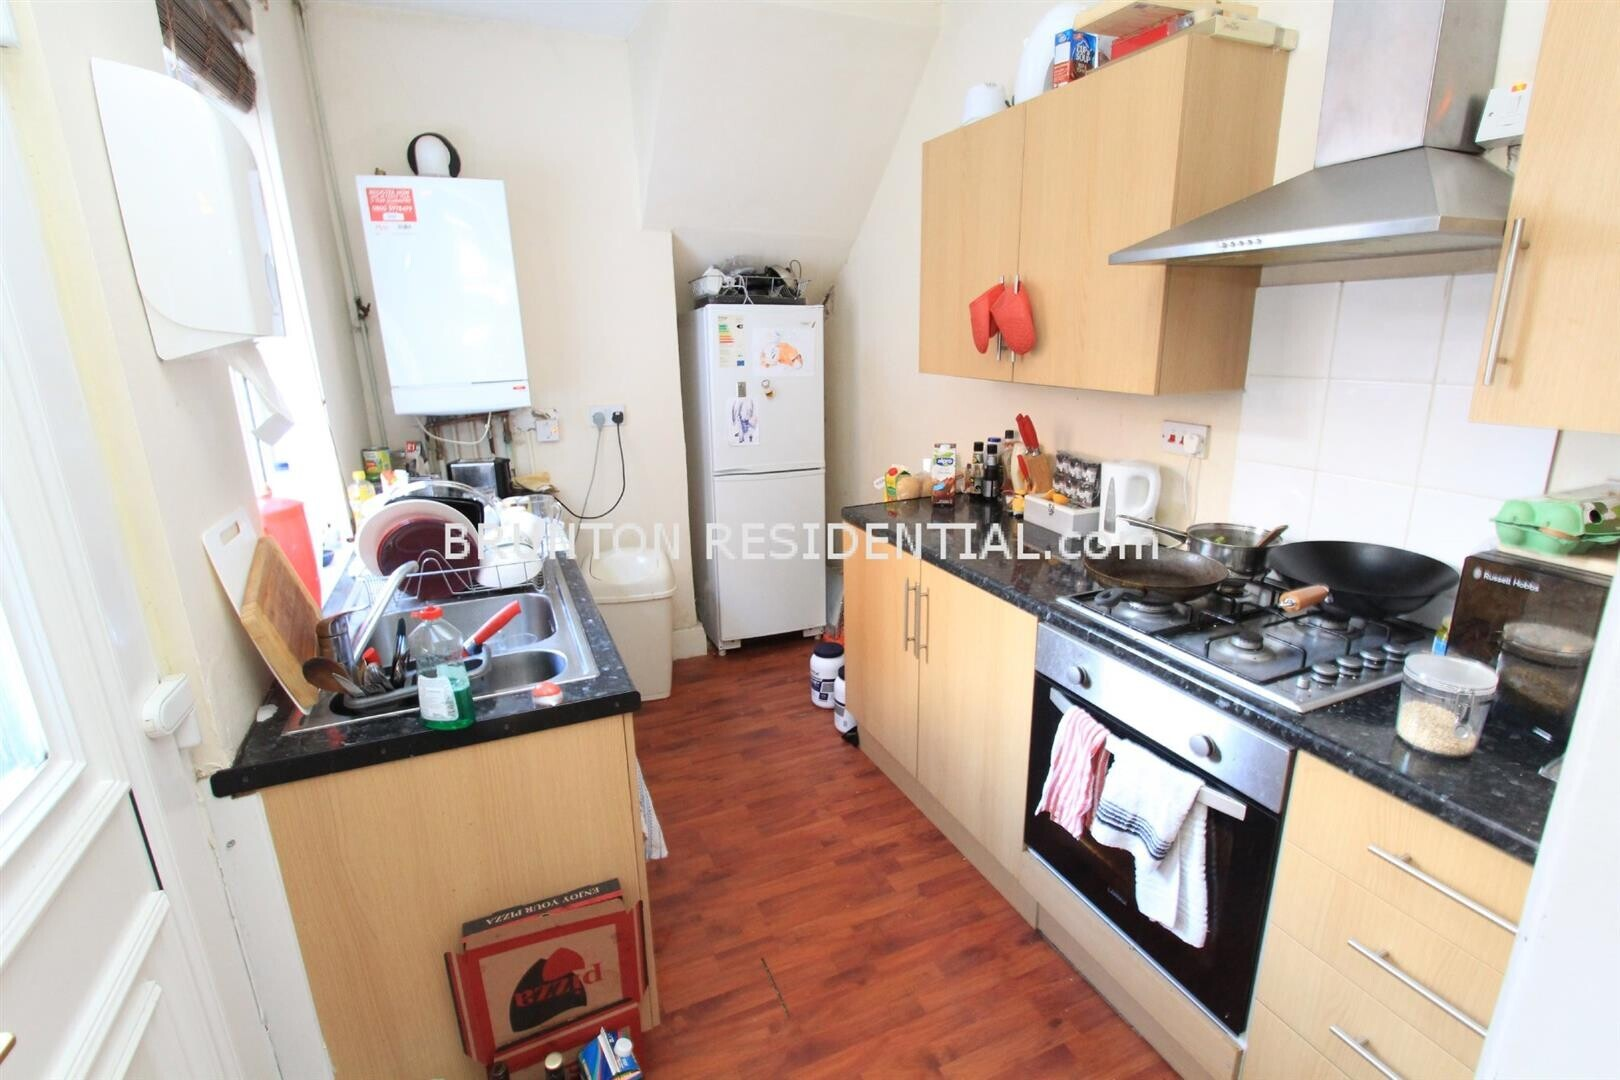 2 bedroom student house in Sandyford, Newcastle